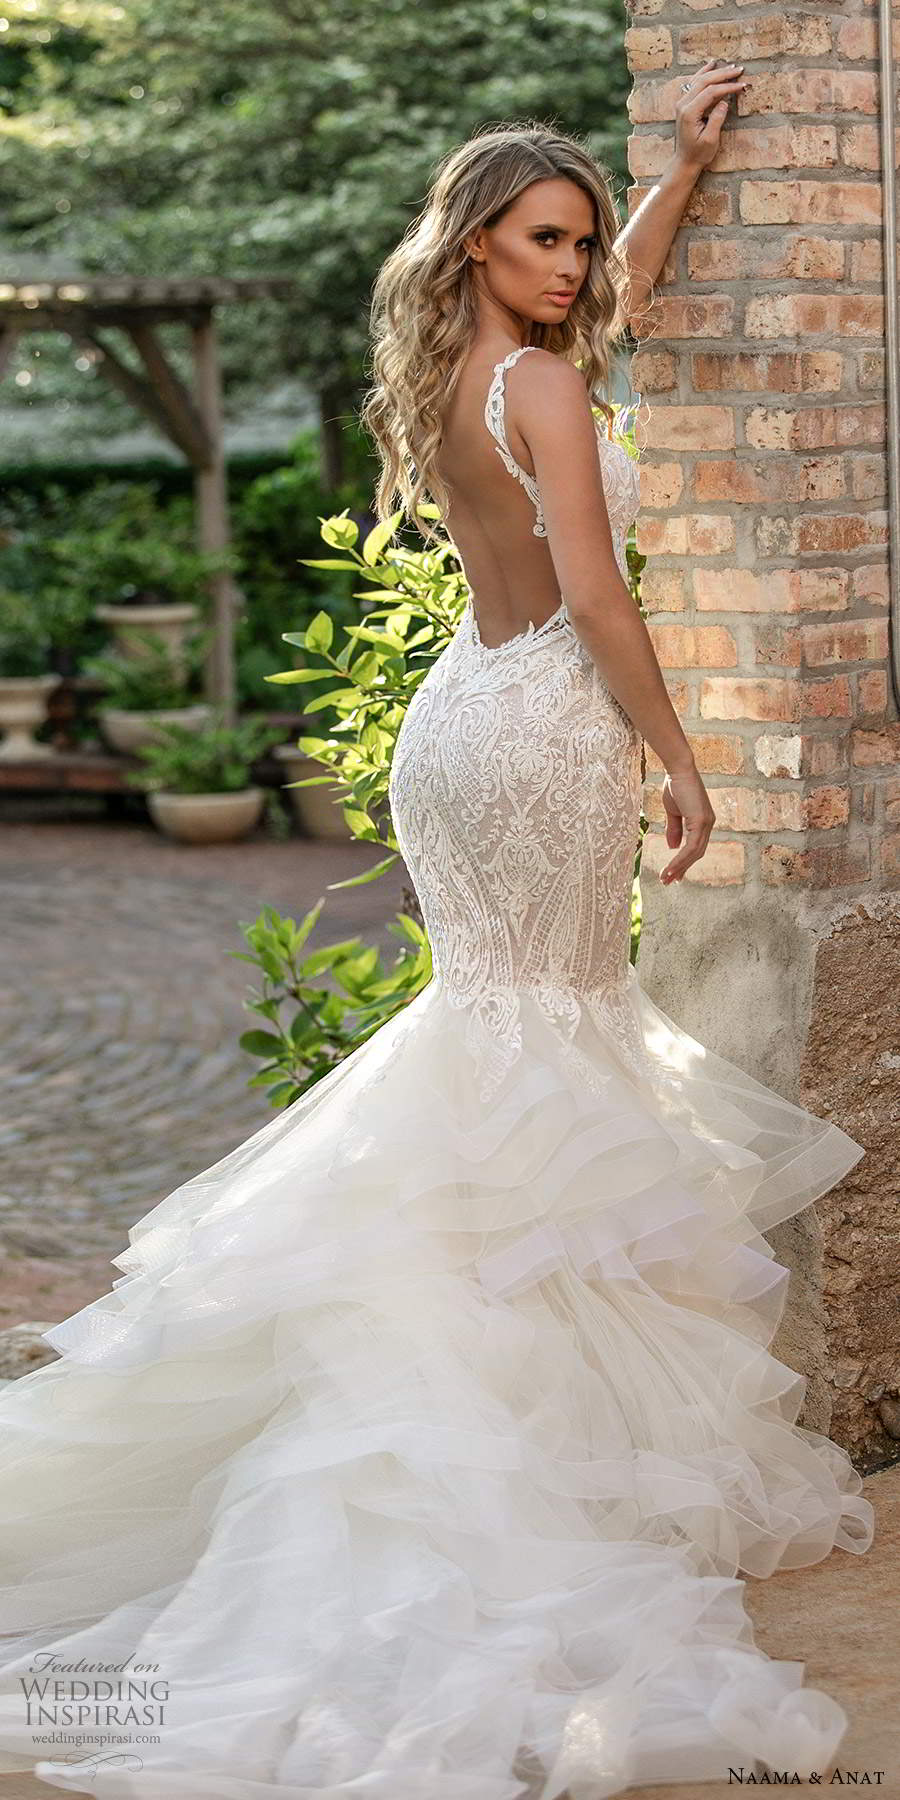 naama and anat 2021 bridal sleeveless straps sweetheart neckline fully embellished fit flare mermaid wedding dress chapel train illusion open back (2) bv